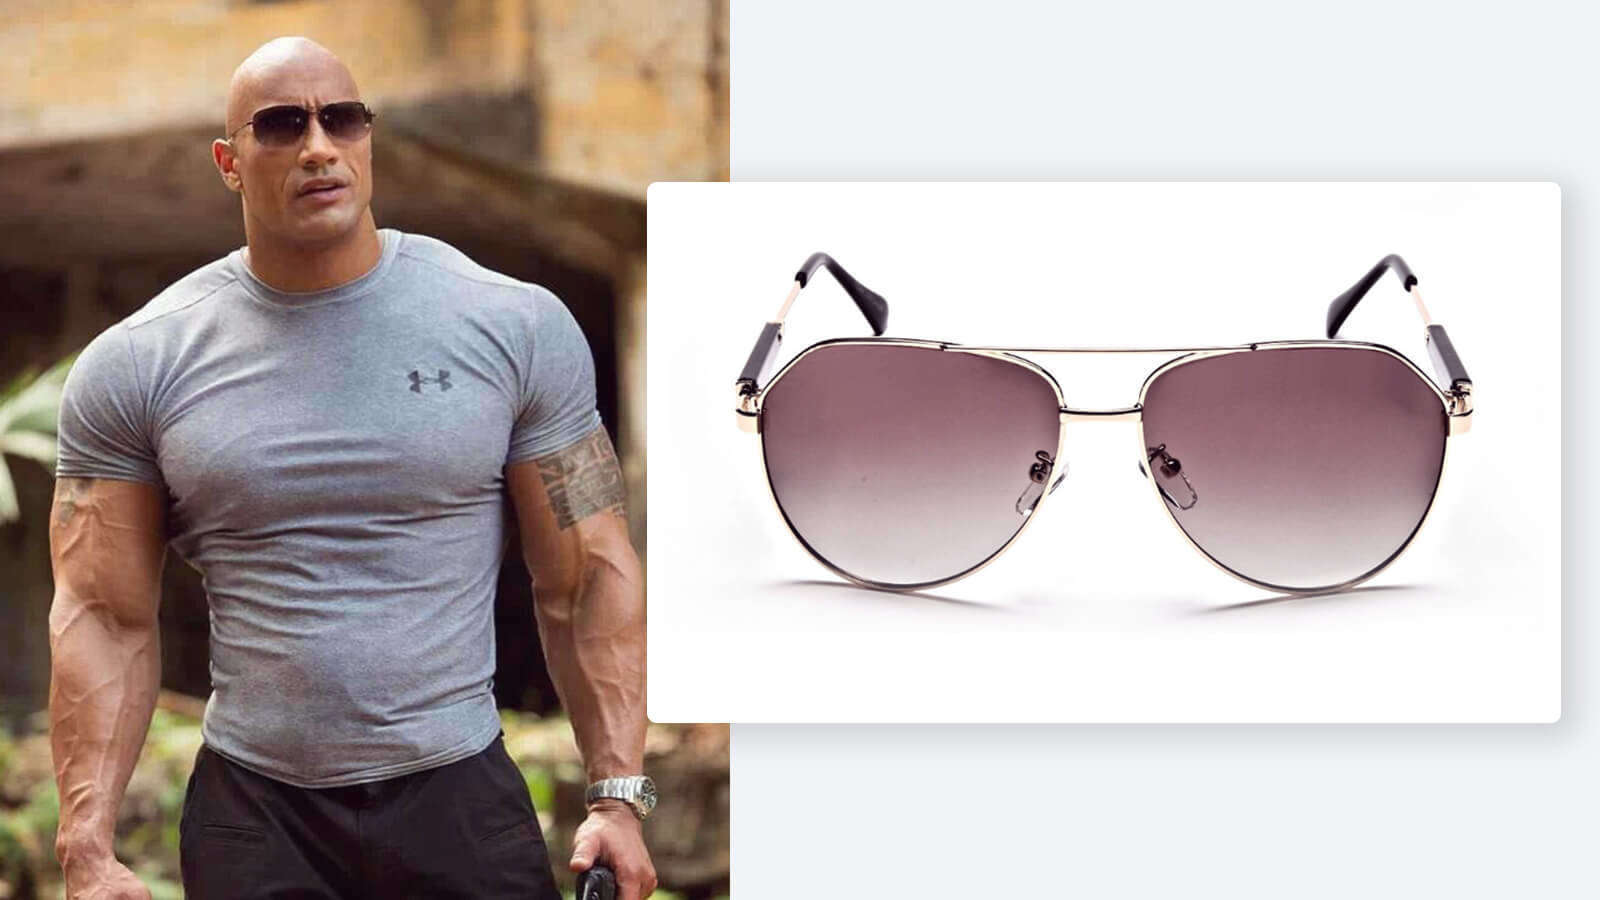 Brown and gold aviator sunglasses